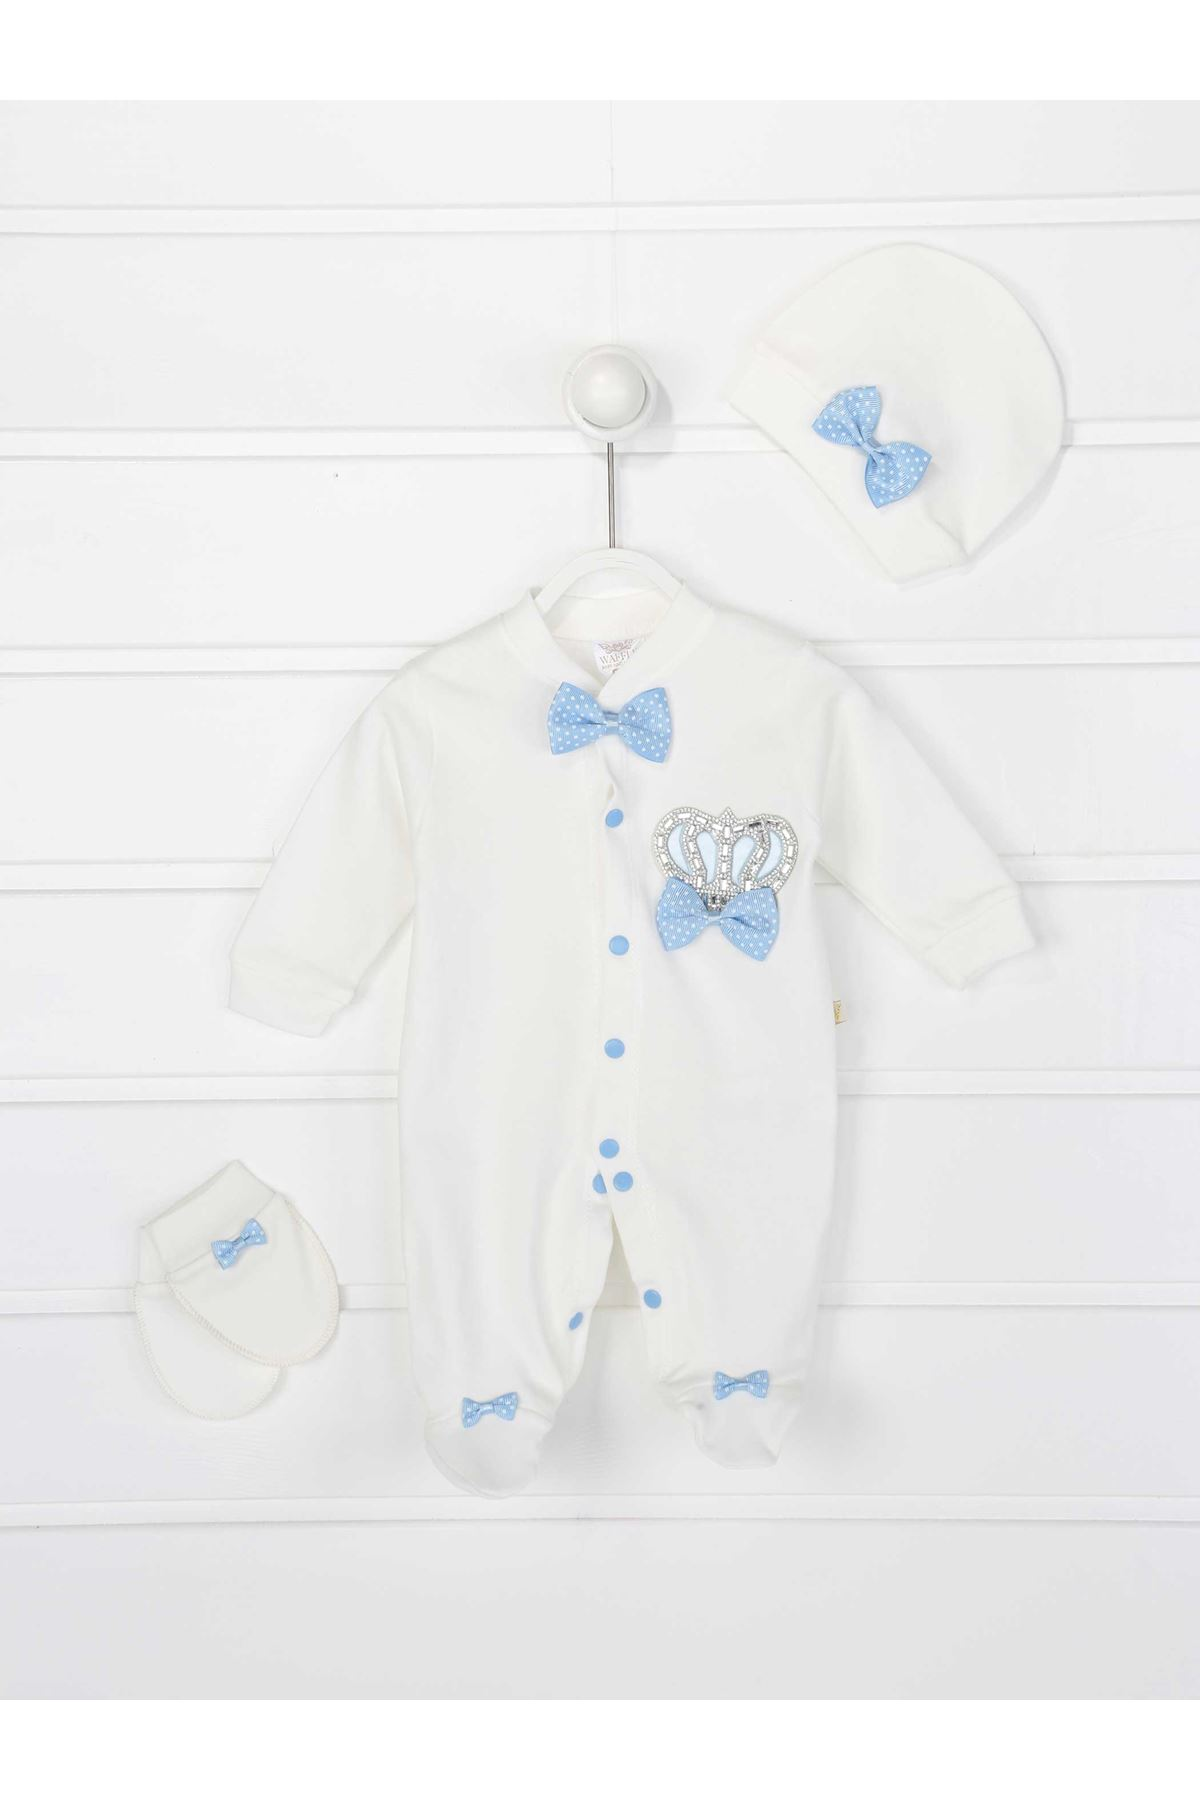 Blue King Crowned Male Baby 3 PCs Rompers